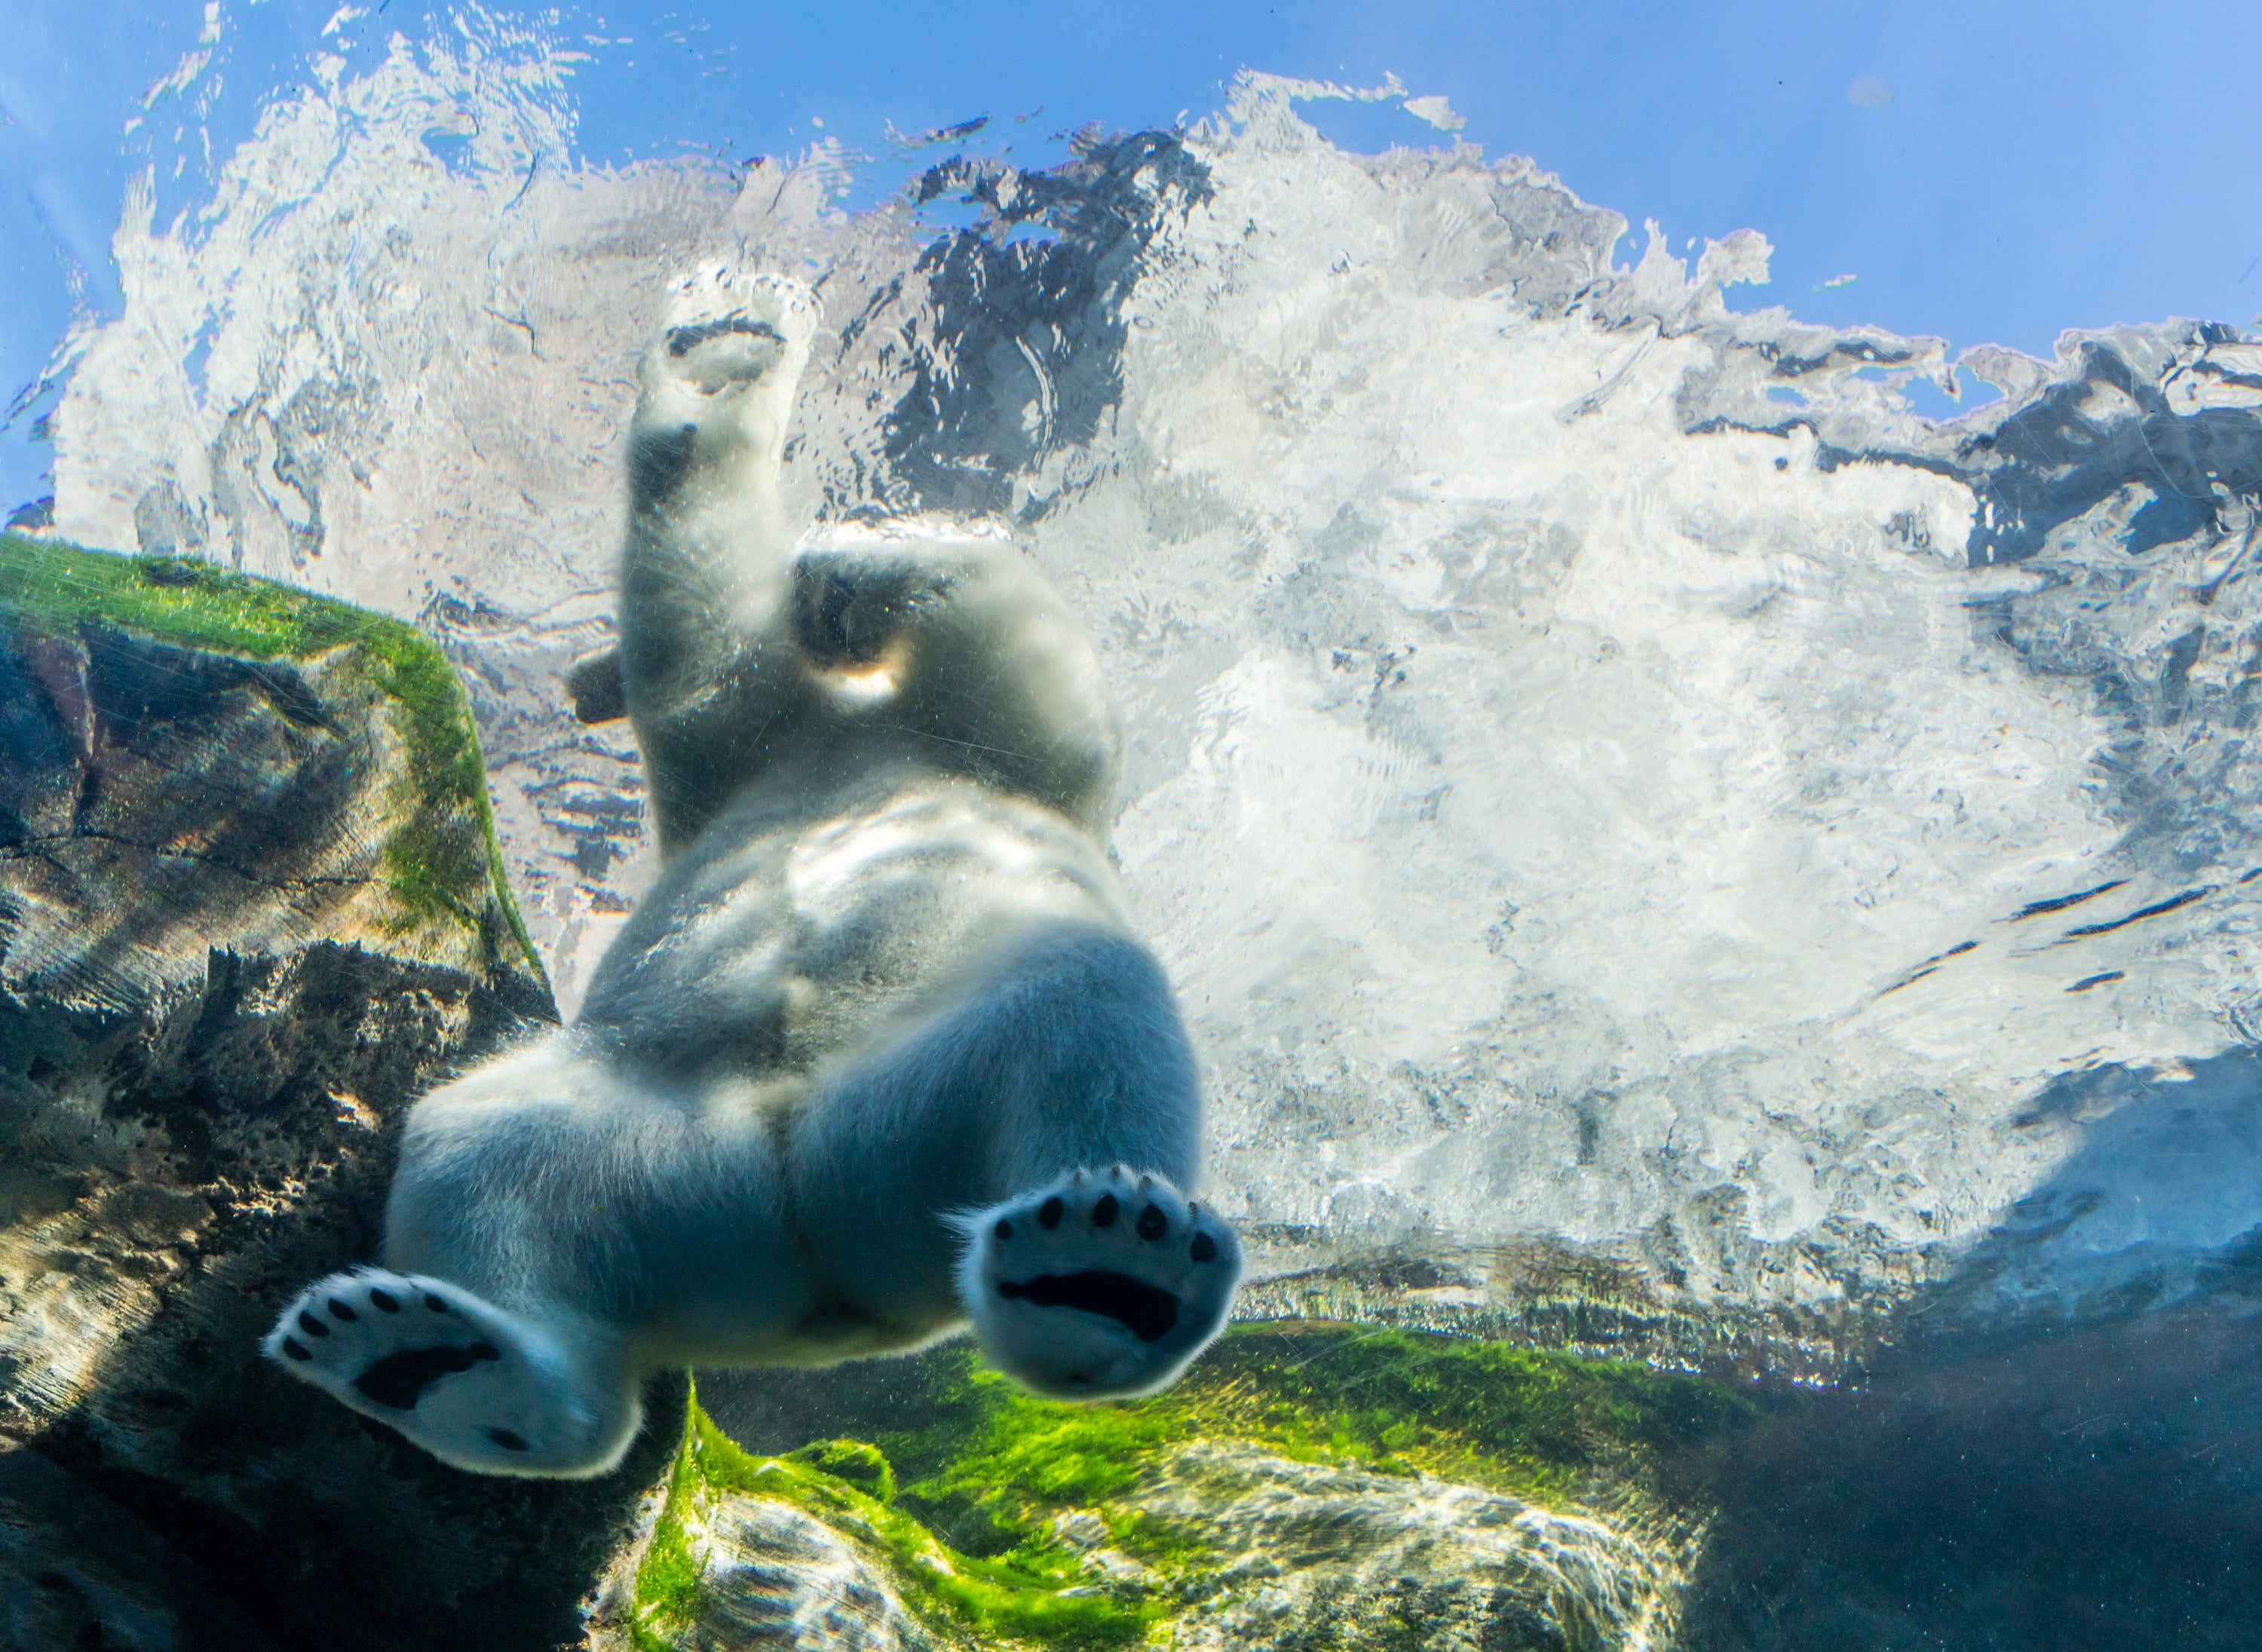 polar bear swims in a pool, Image © Eva Blue on Unsplash